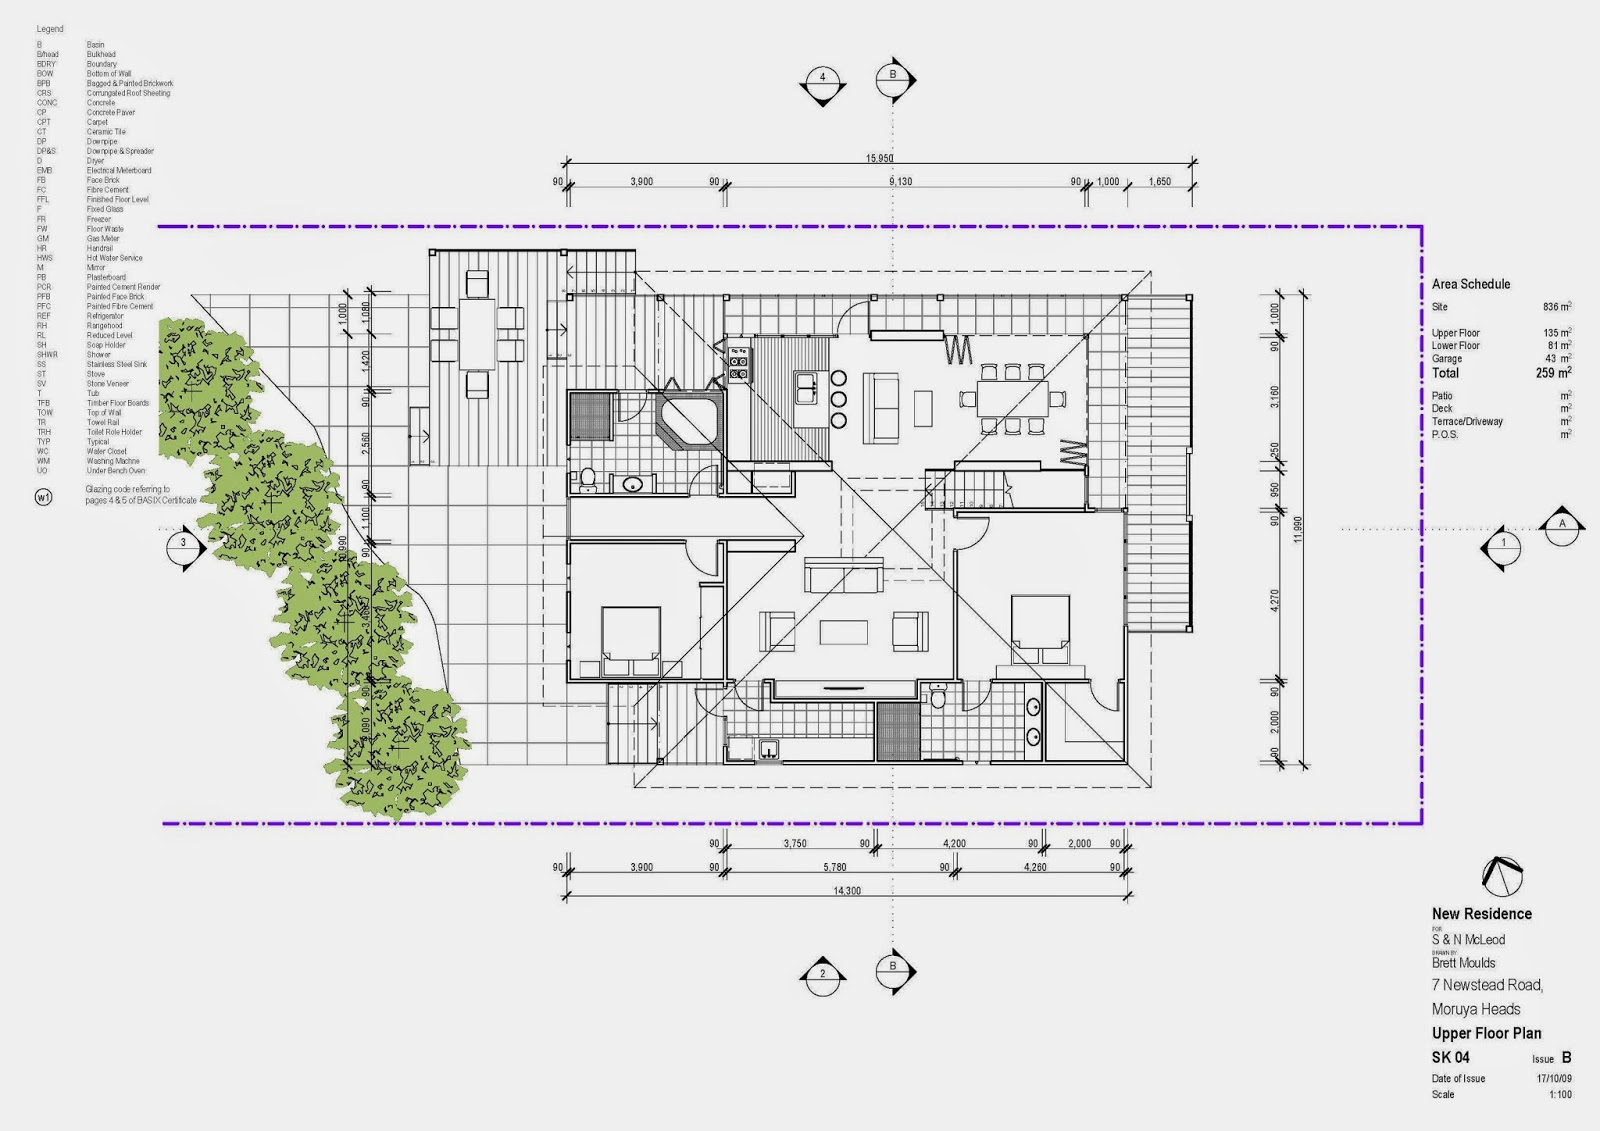 Architectural floor plan architectural floor plan for Architecture plan drawing